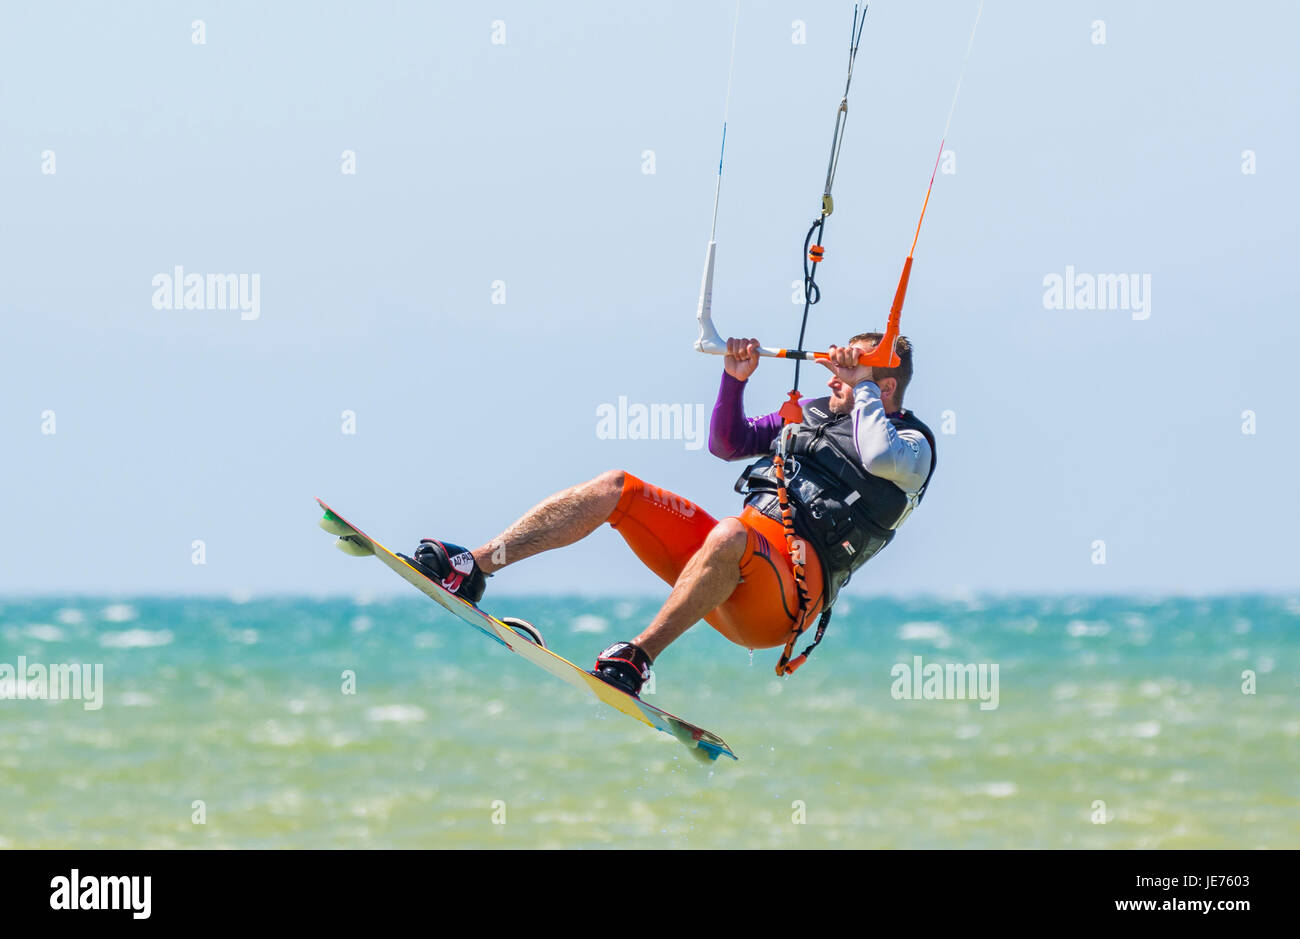 Kitesurfer flying in the air as he does a stunt while at sea on a windy day. - Stock Image